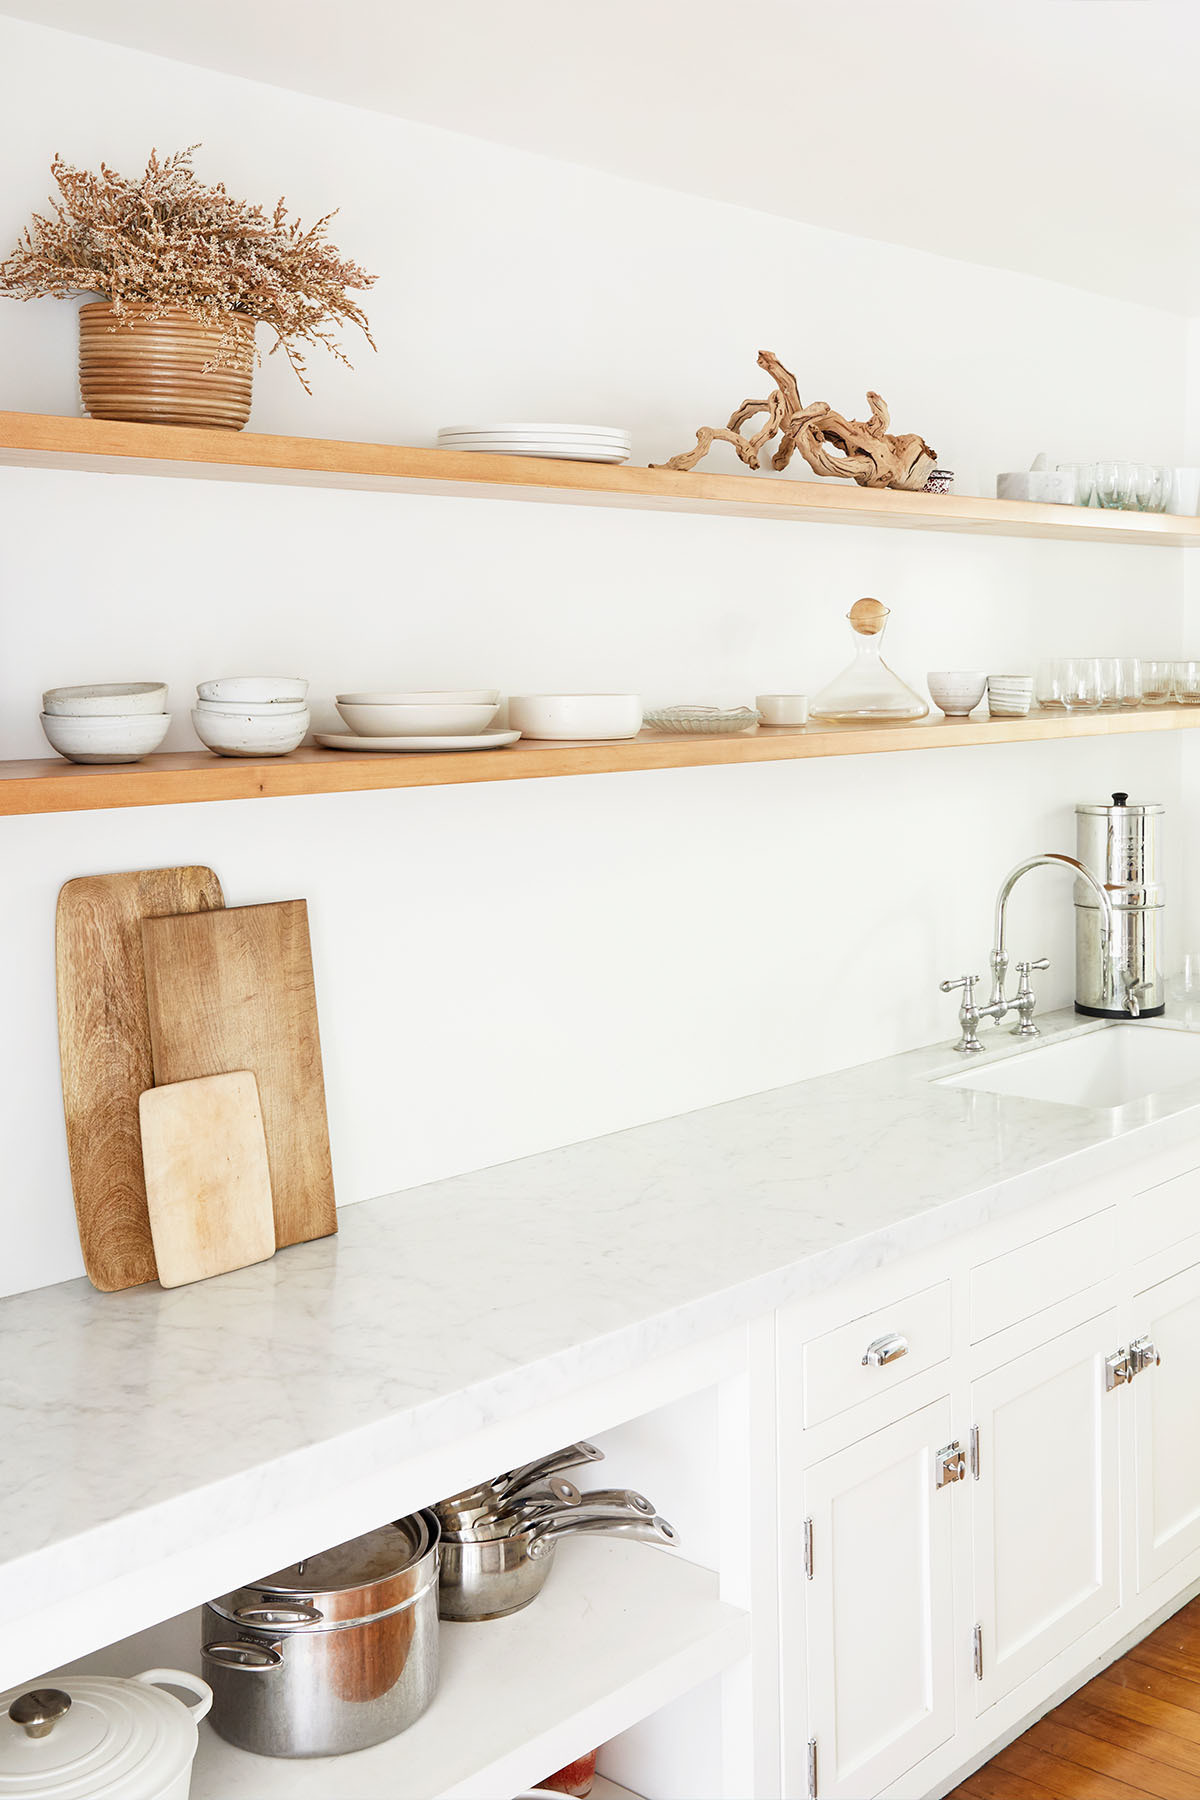 Deters keeps her kitchen space ultimately pared-back, with uniform ceramics and textured pieces from her favorite home stores. Food52 Glassware | Food52 Boards | Rachel Saunders Ceramics | Mud Ceramics | Gjusta Goods Ceramics | Le Creuset Dutch Oven | Custom Carrara Counter | Custom Floating Shelves | Original Cabinetry.